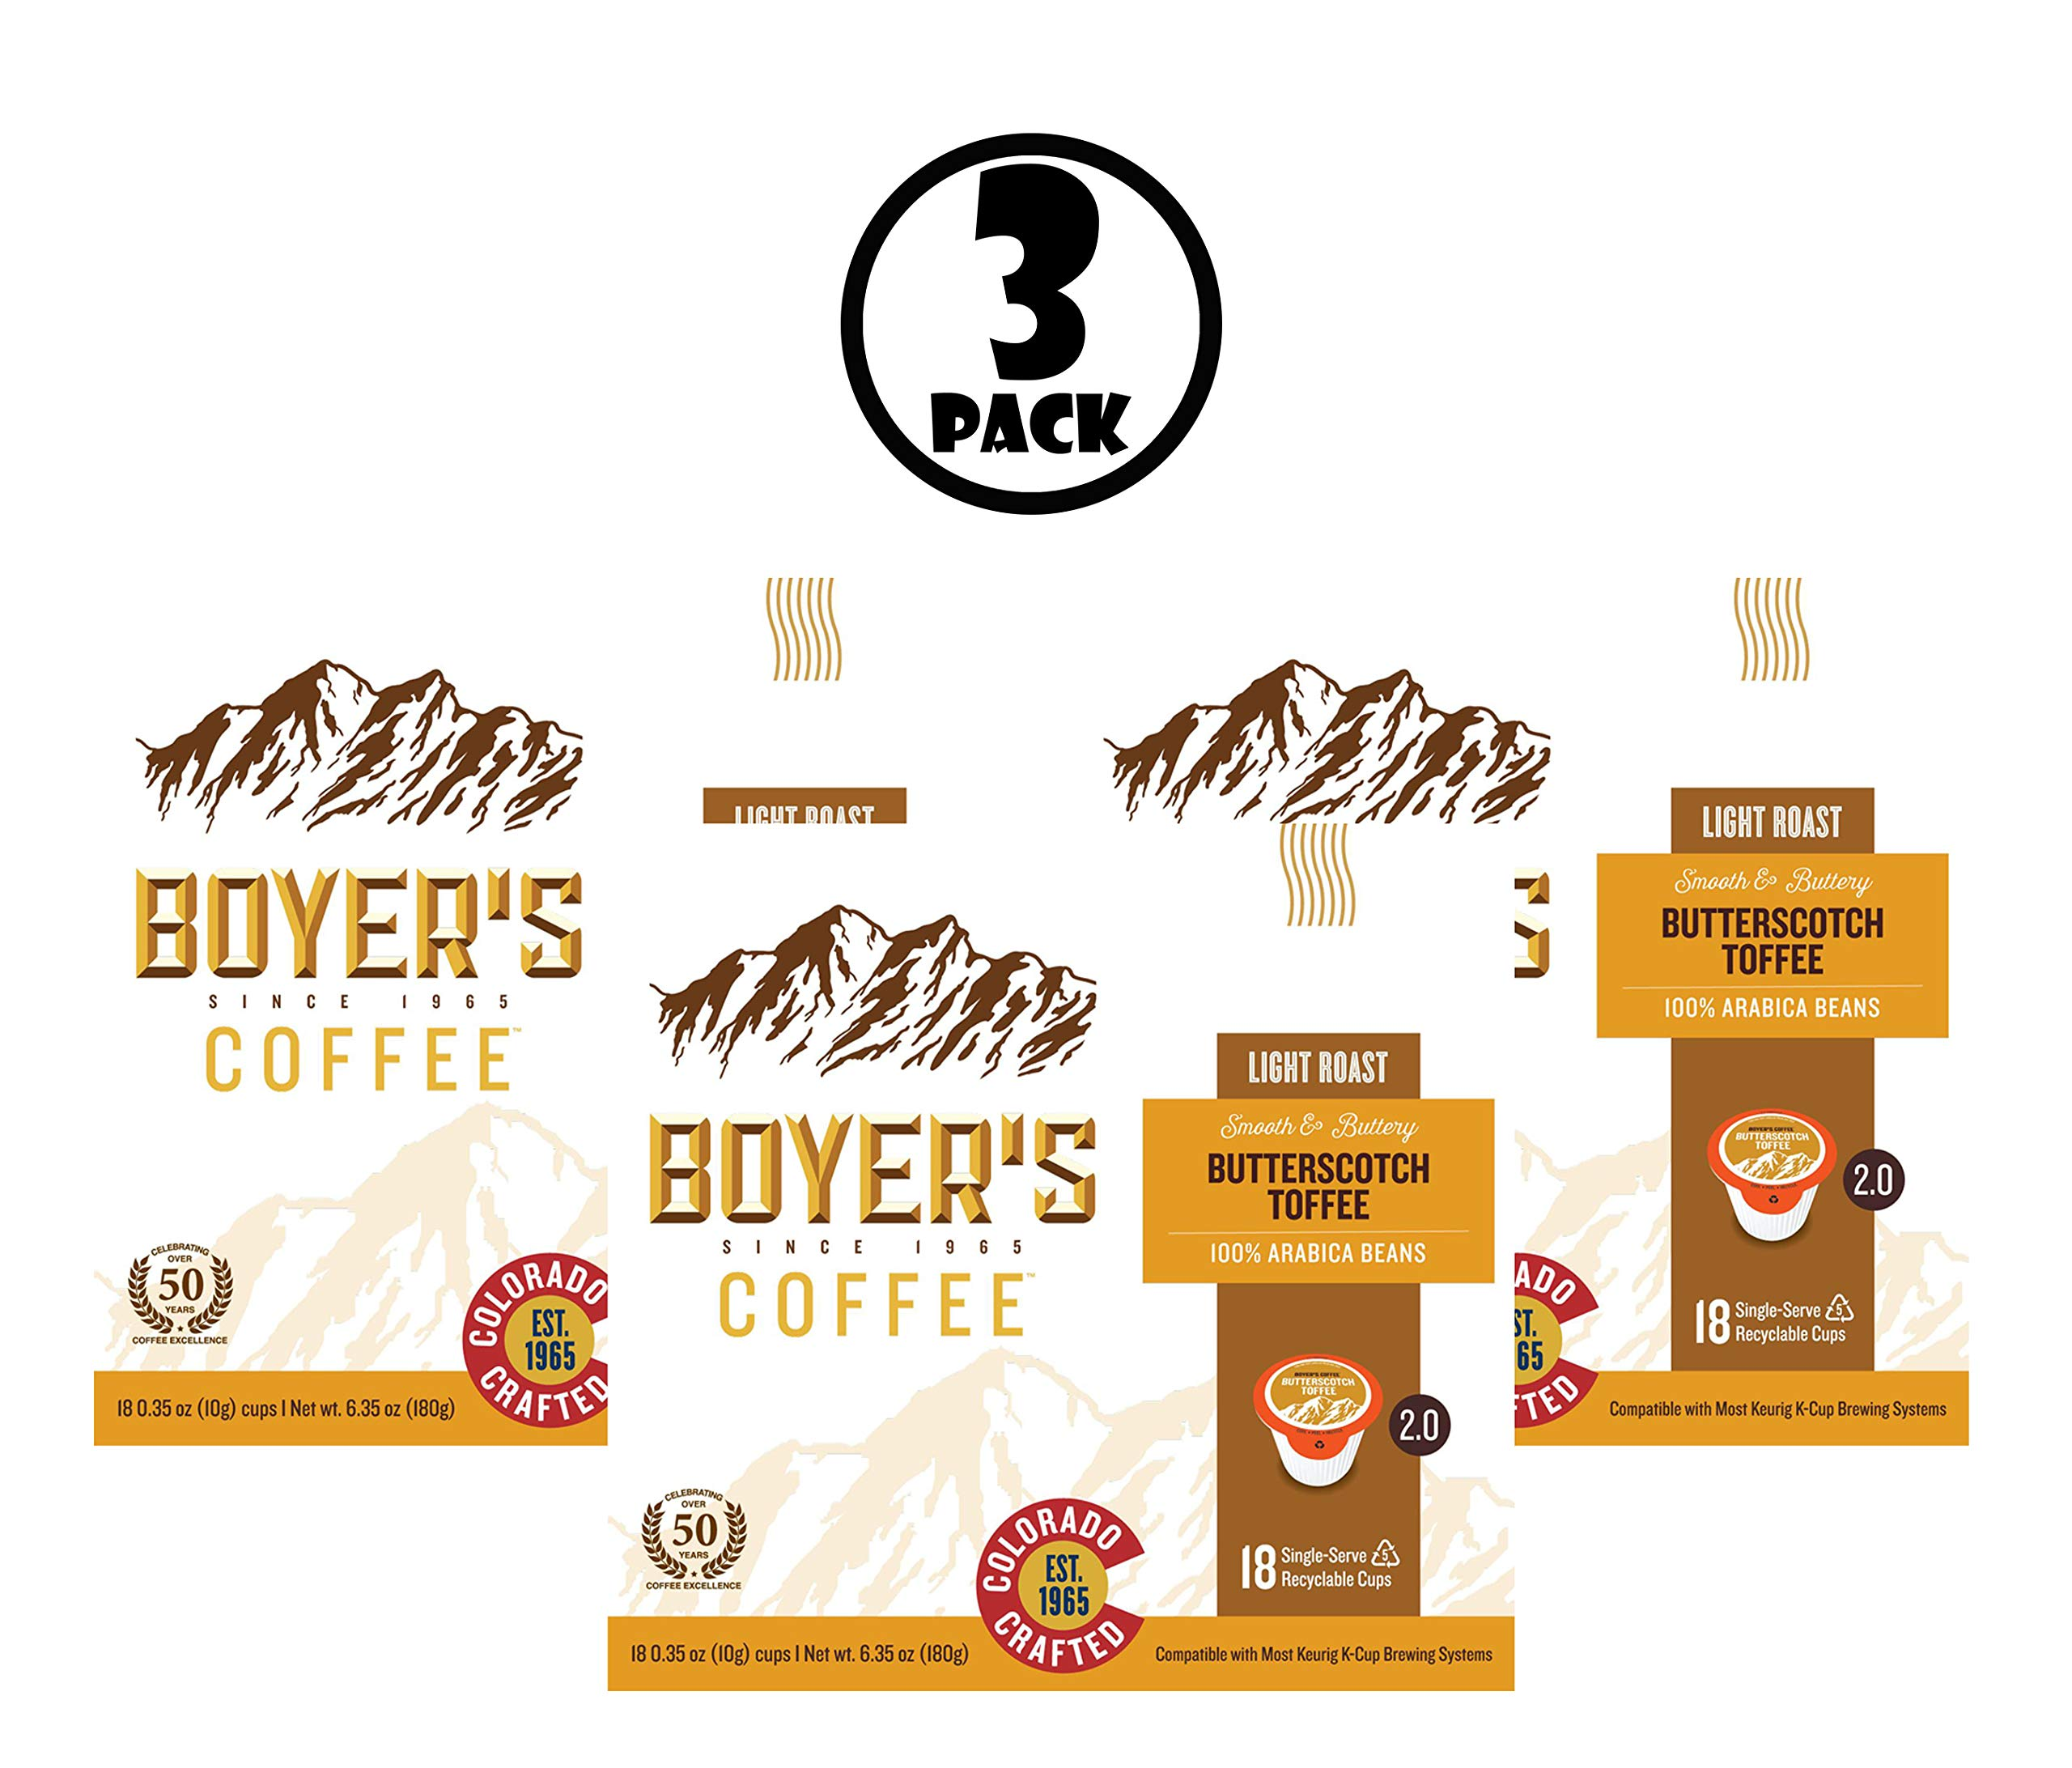 (3 Pack) Boyer's Butterscotch Toffee Single Serve Coffee, 18 Ct by Boyer's Coffee